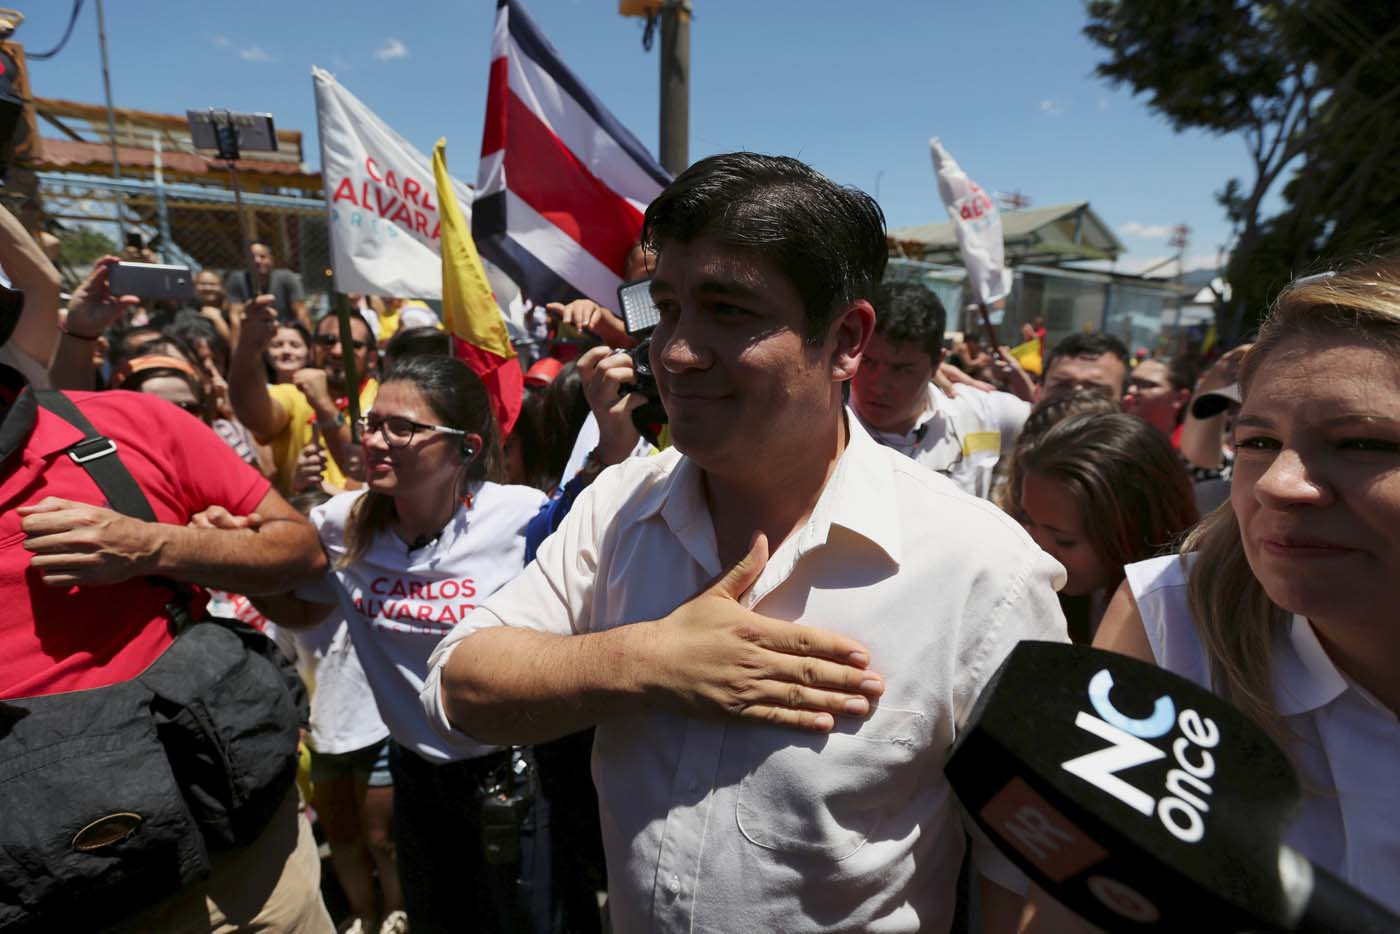 Carlos Alvarado Quesada, presidential candidate of the ruling Citizens' Action Party (PAC), gestures to supporters after casting his ballot during the presidential election in San Jose, Costa Rica April 1, 2018. REUTERS/Jose Cabezas TPX IMAGES OF THE DAY